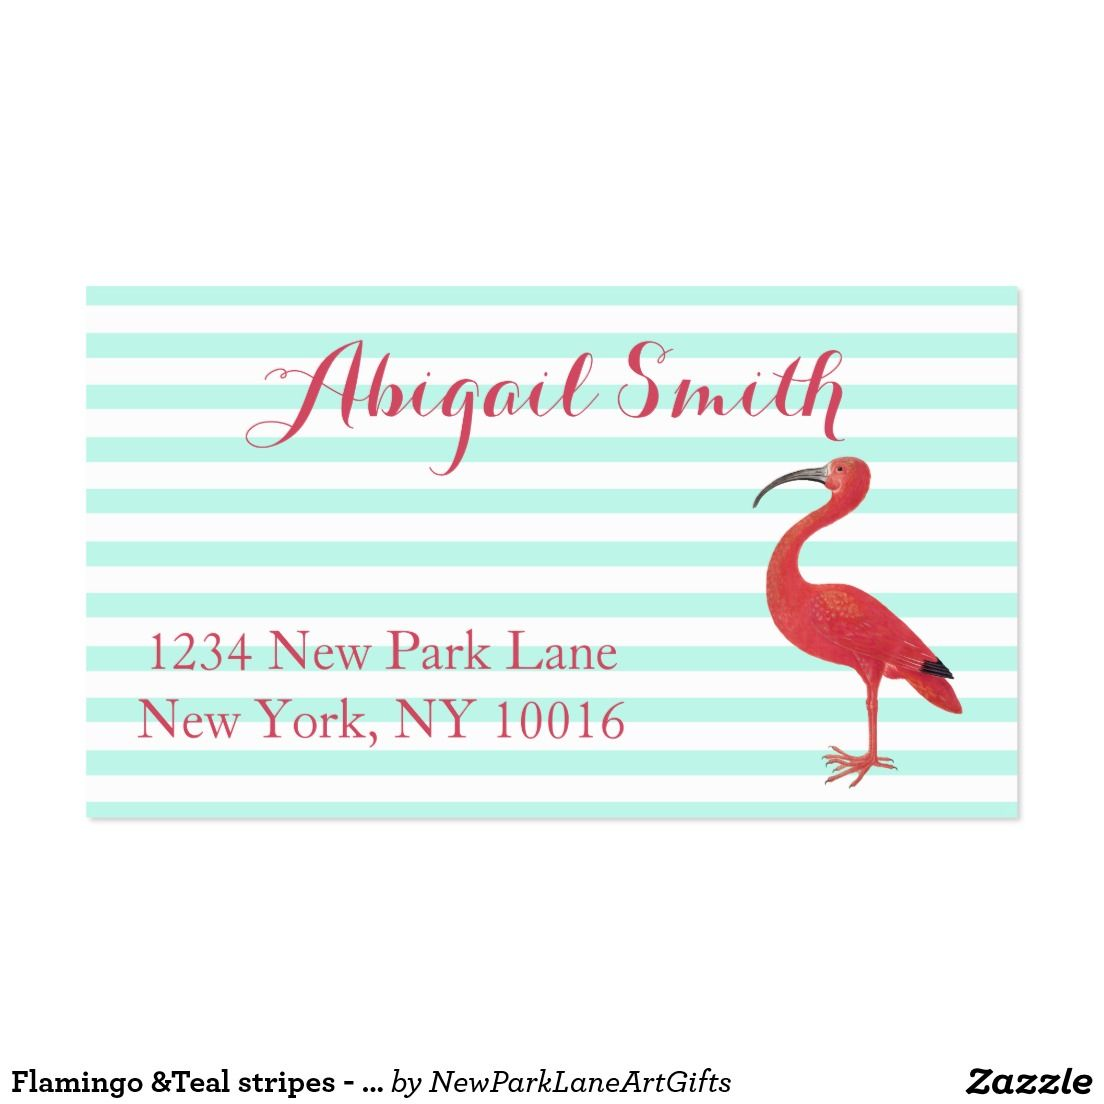 Flamingo &Teal stripes - Fine Art Business Cards | Flamingo